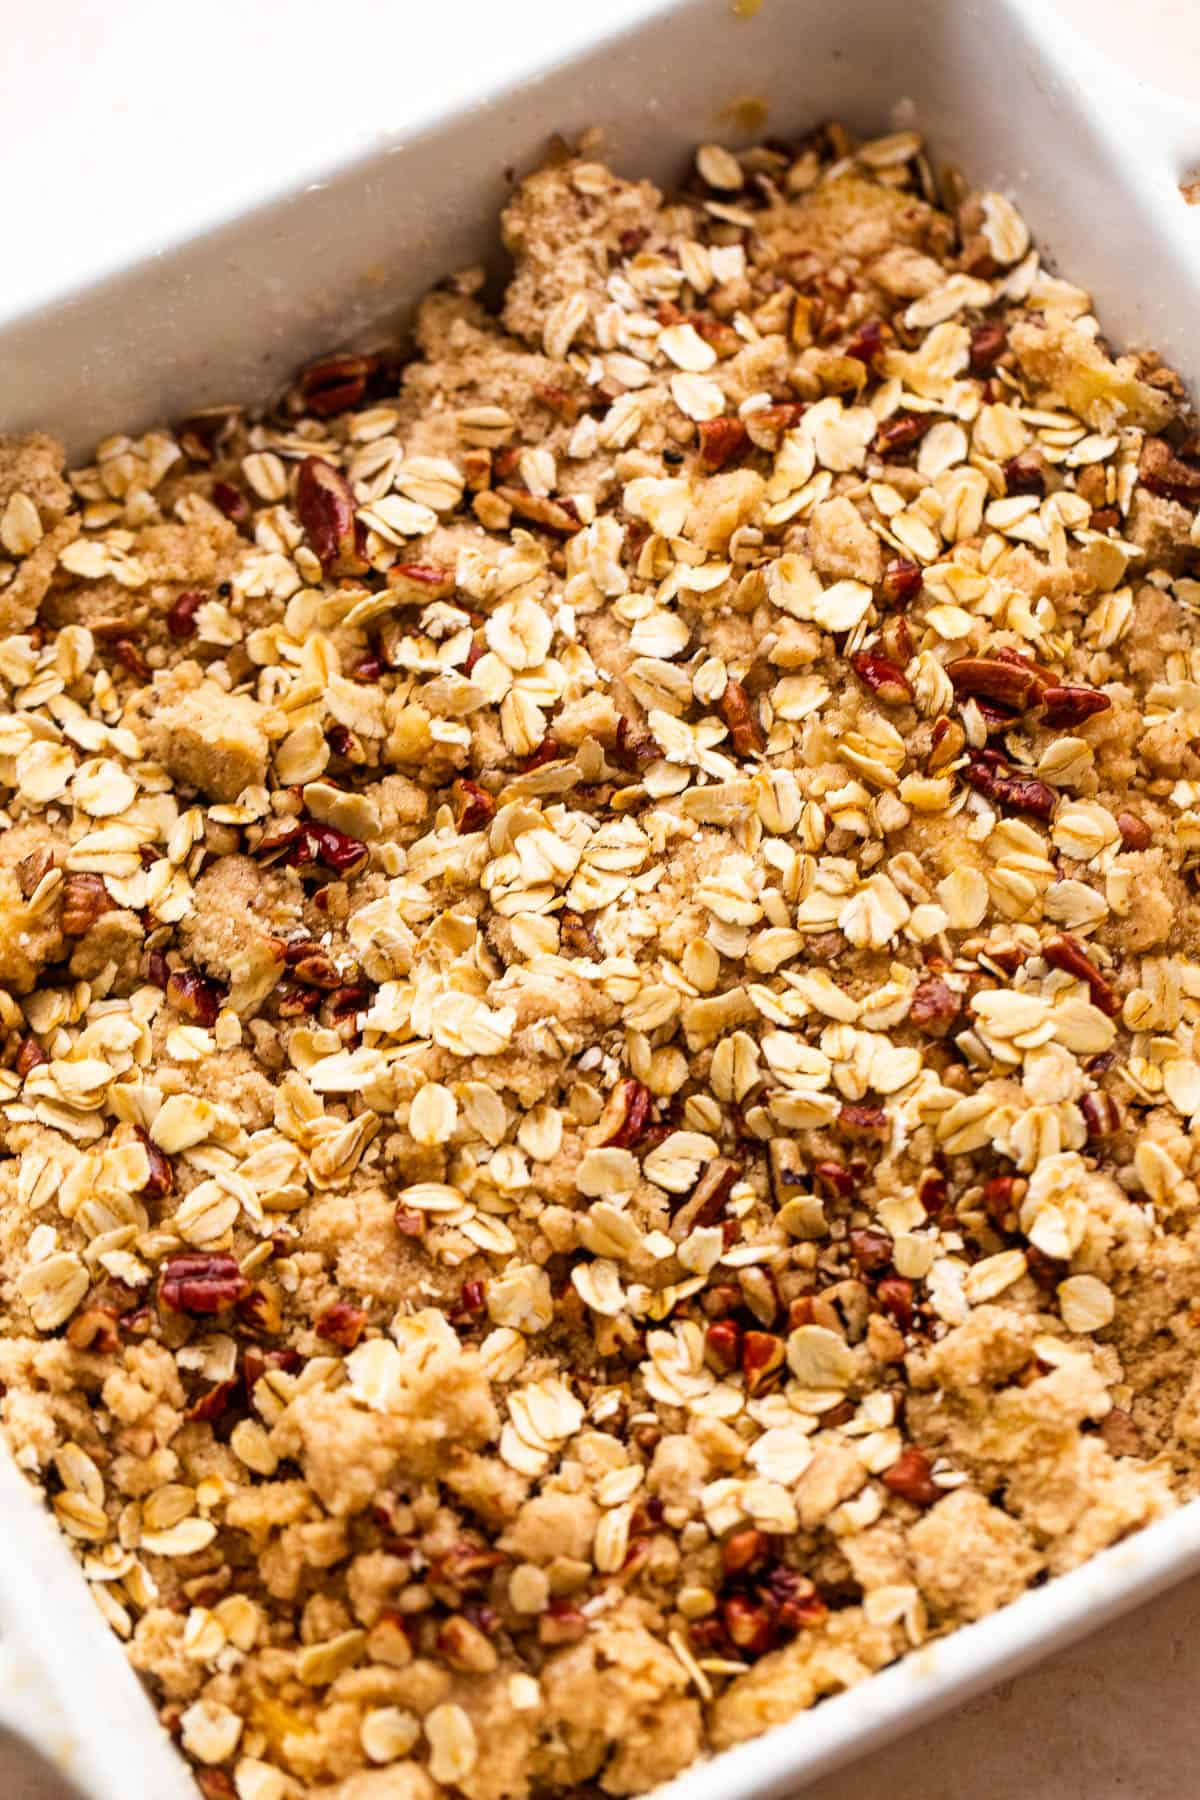 squared baking dish with peach slices covered in oats, flour, and pecans